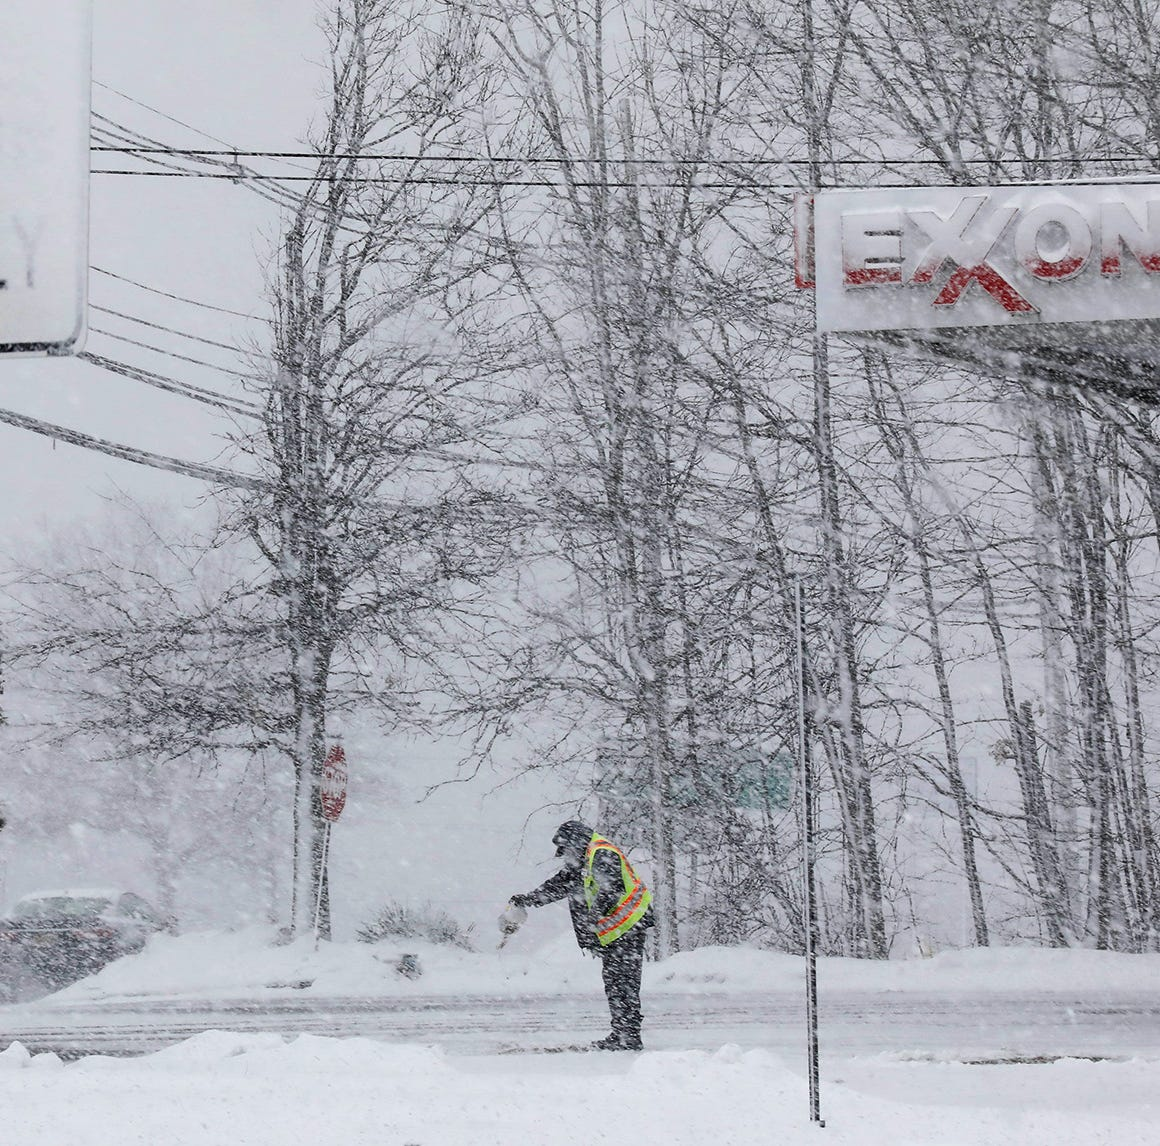 Remember November: How prepared is NJ for winter storms?